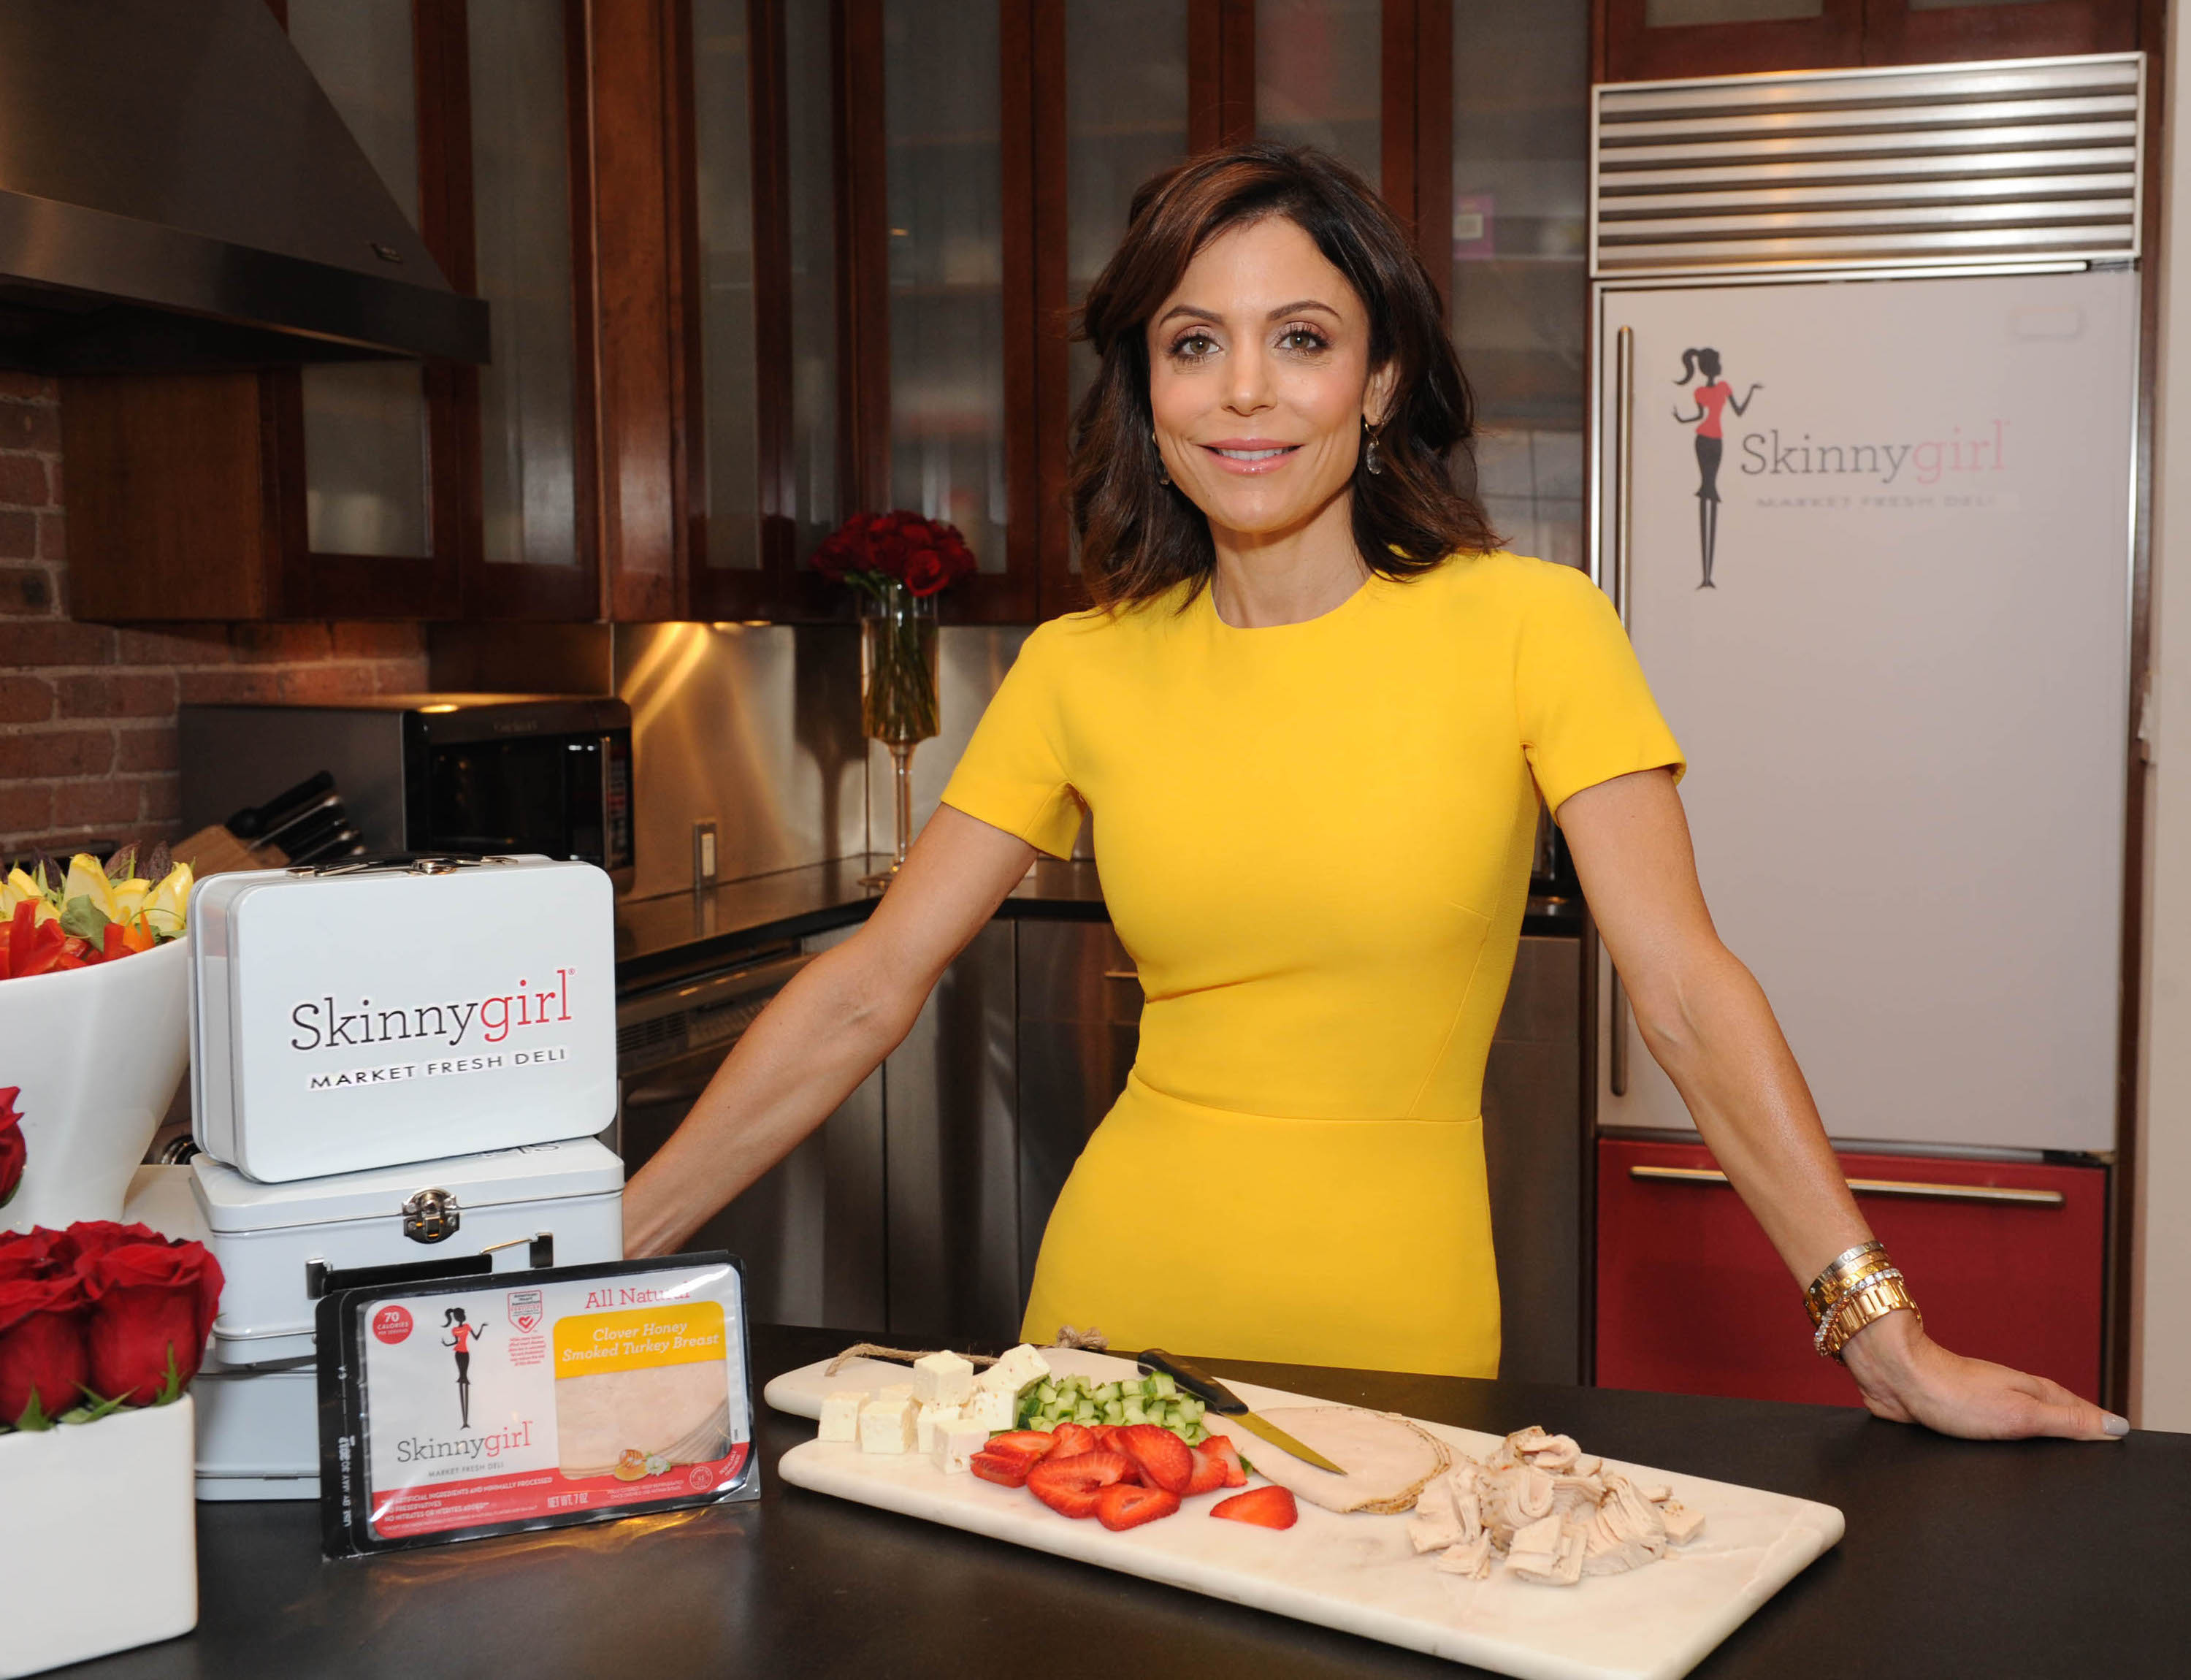 Skinnygirl Market Fresh Deli Press Release Image